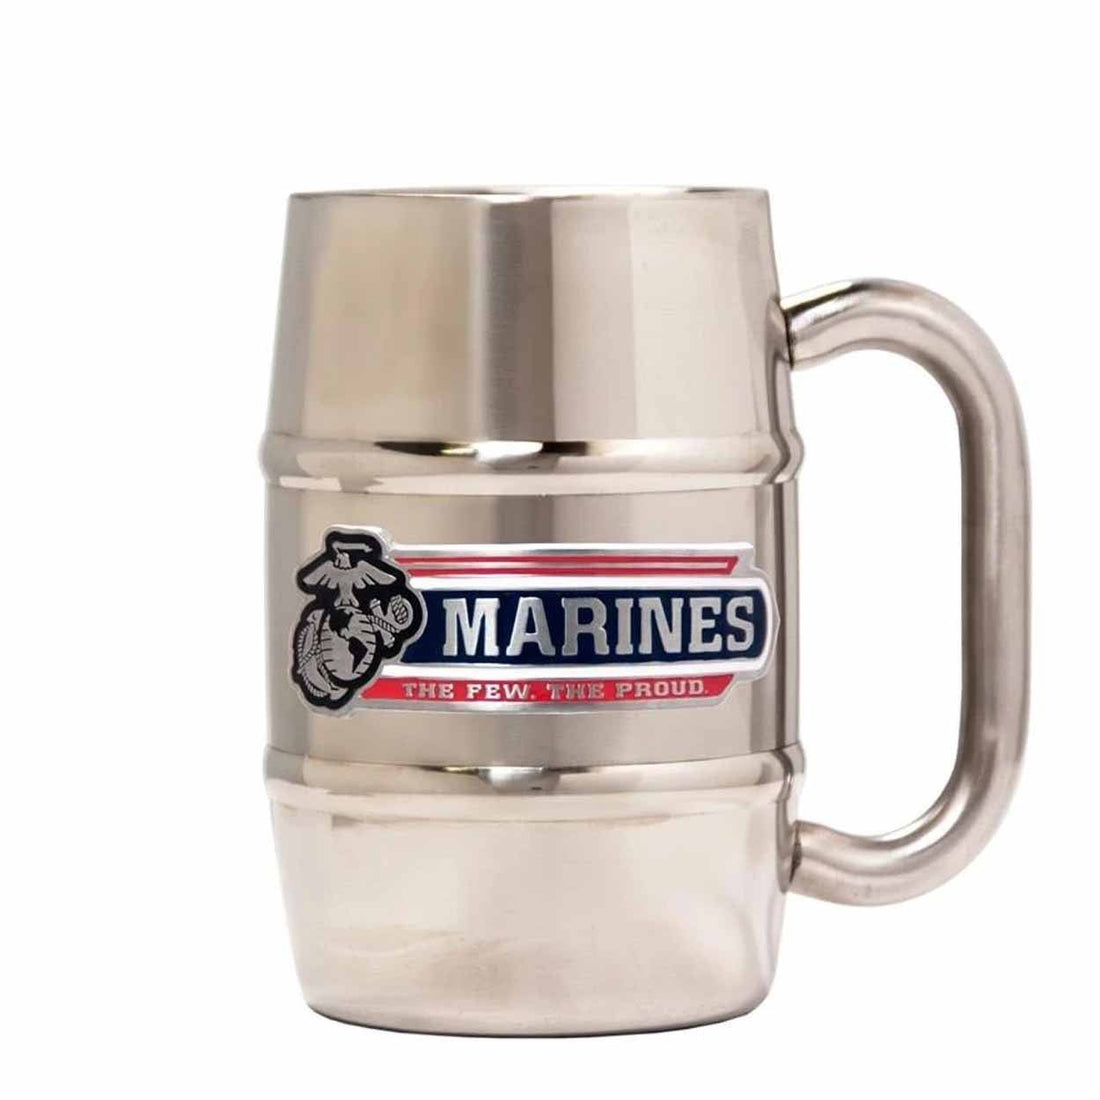 Marines The Few The Proud Stainless Steel Insulated Barrel Mug